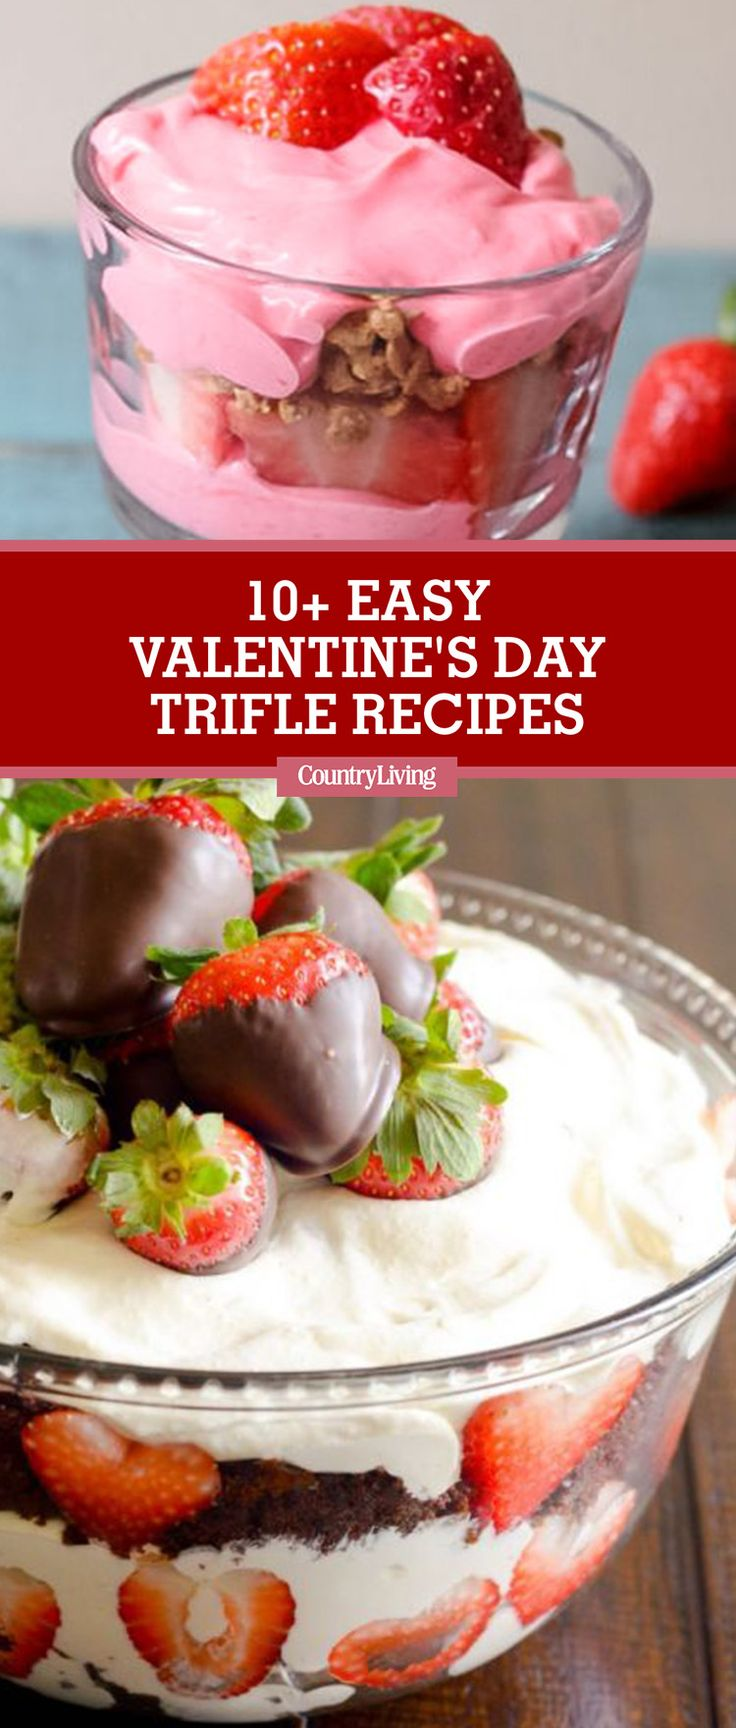 These delicious treats are a gift in themselves! Quick and easy, they combine chocolate, fruit, brownies, and even cookie dough. #valentinesday #valentinesdaydesserts #nobakedesserts #valentinesdaysweets